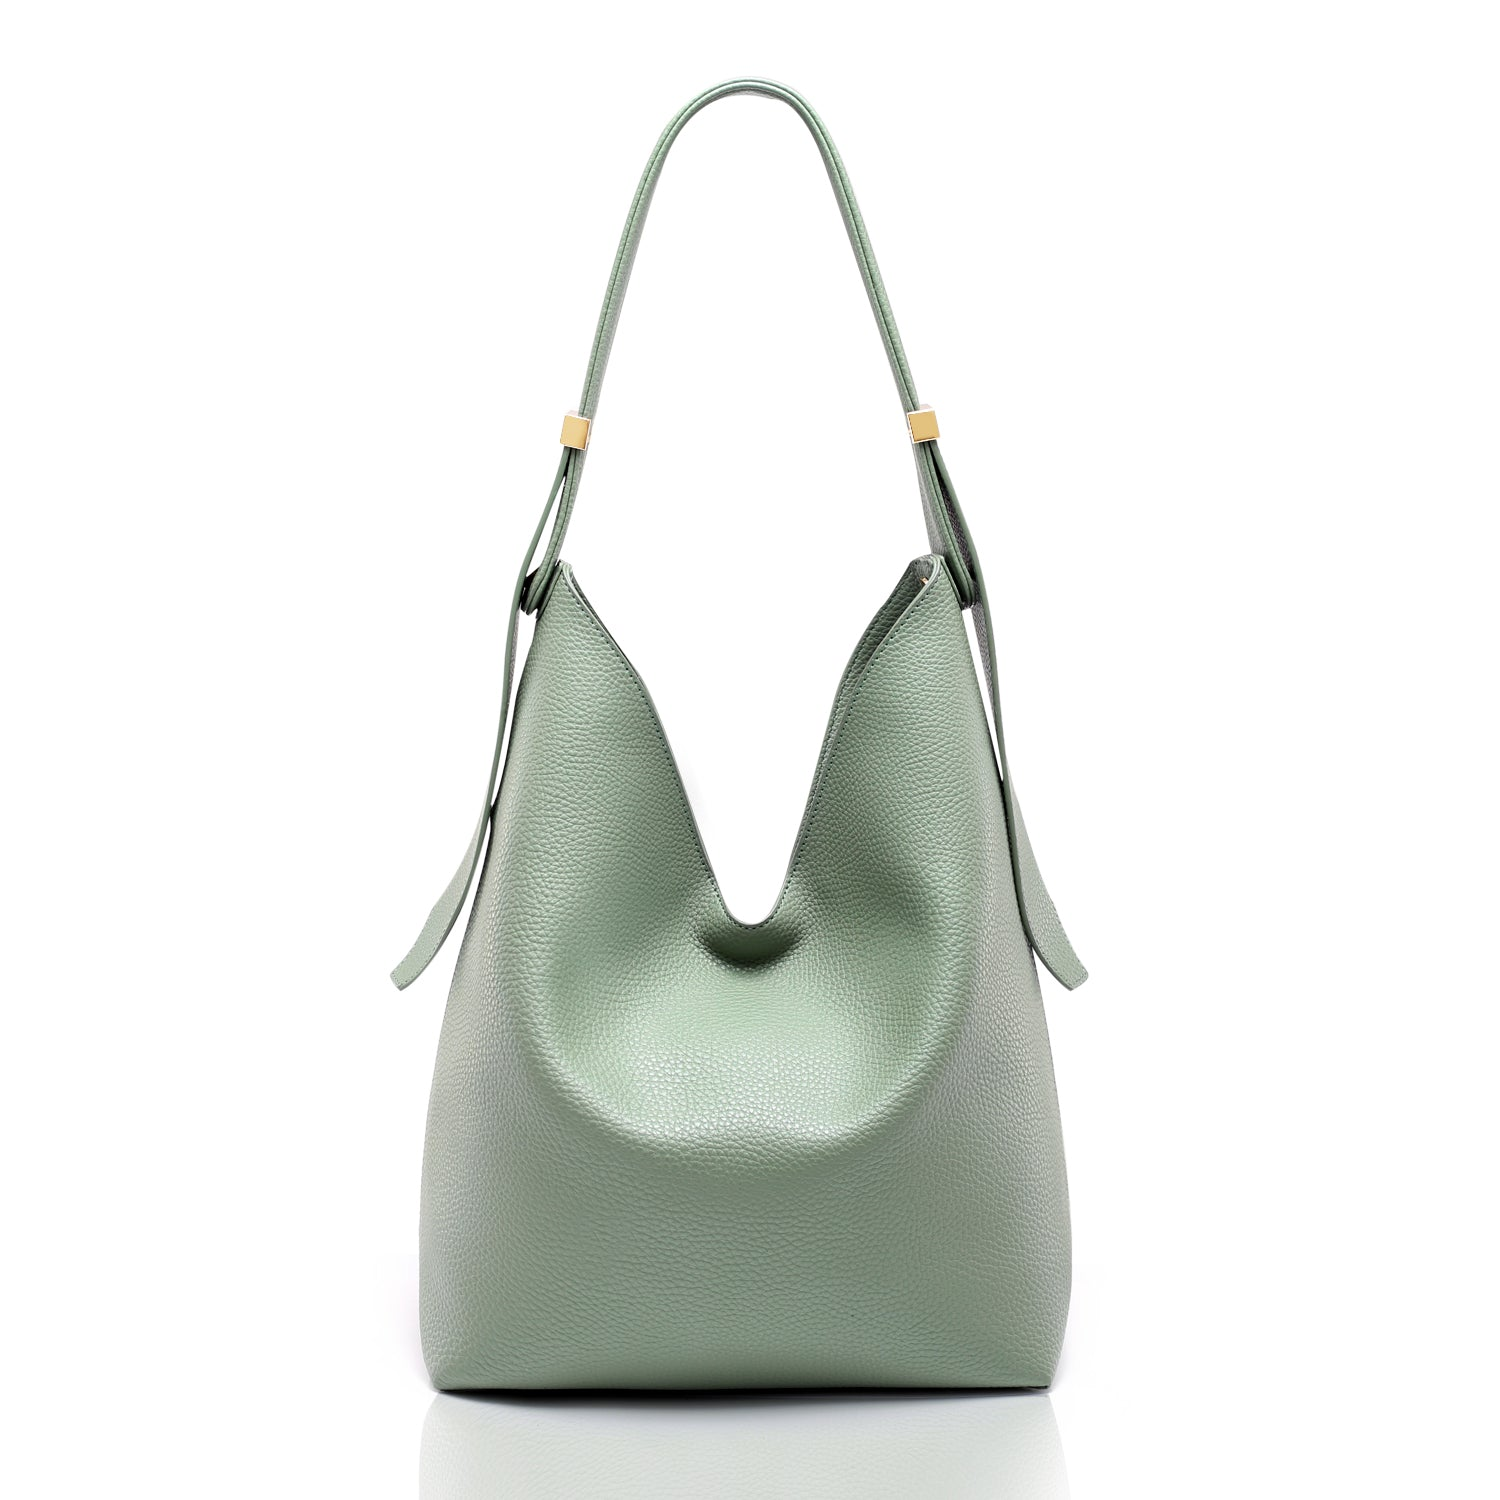 RIBAG HOBO - TEAL